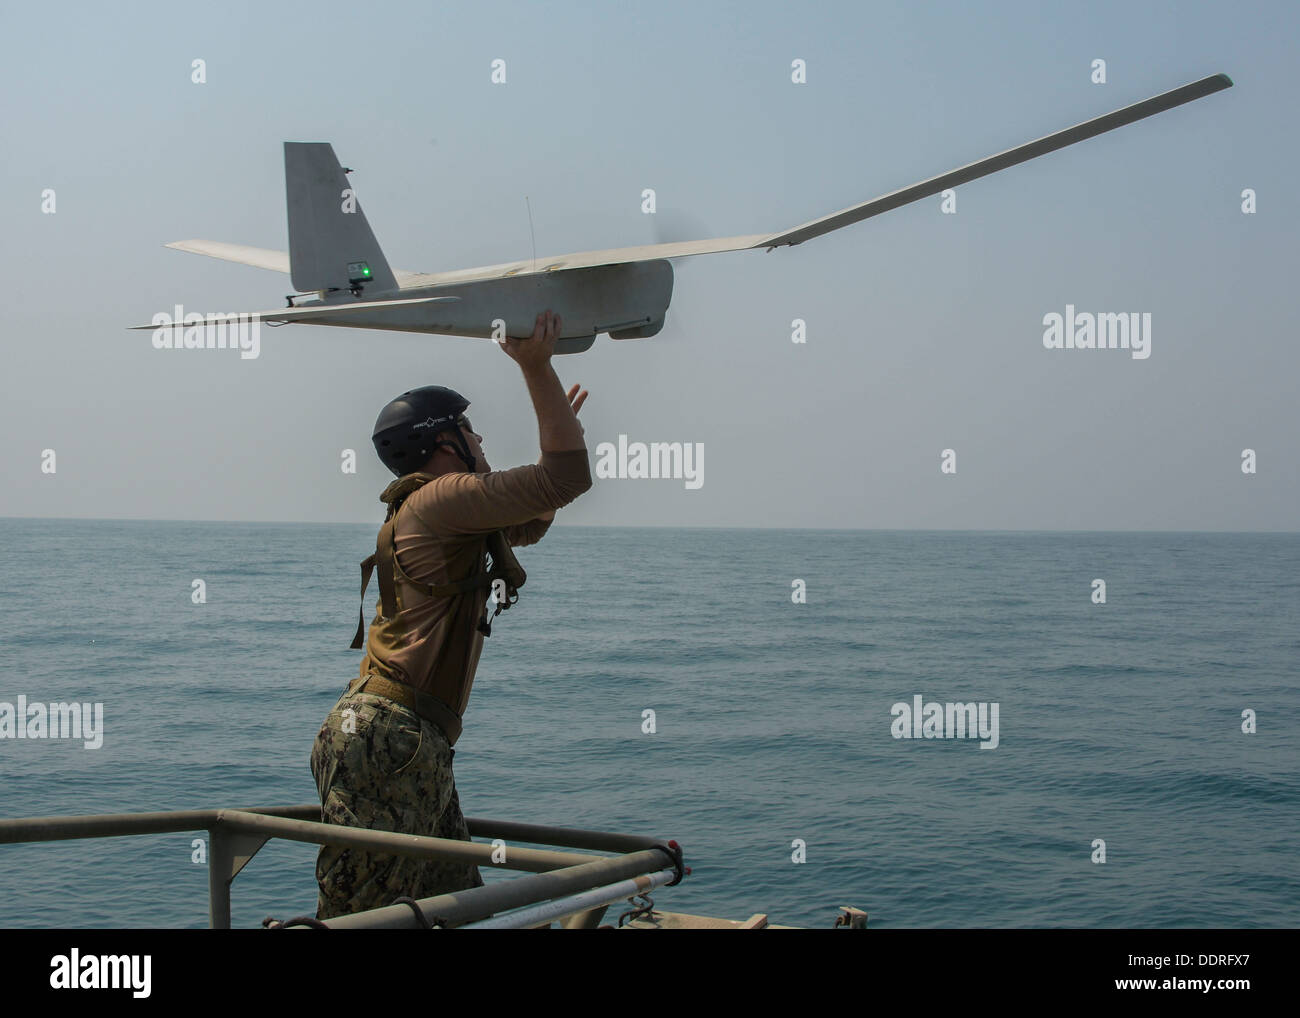 Puma AE unmanned aerial vehicle from a Riverine Command Boat (RCB), at-sea. RCBs provide a multi-mission platform for the U.S. - Stock Image